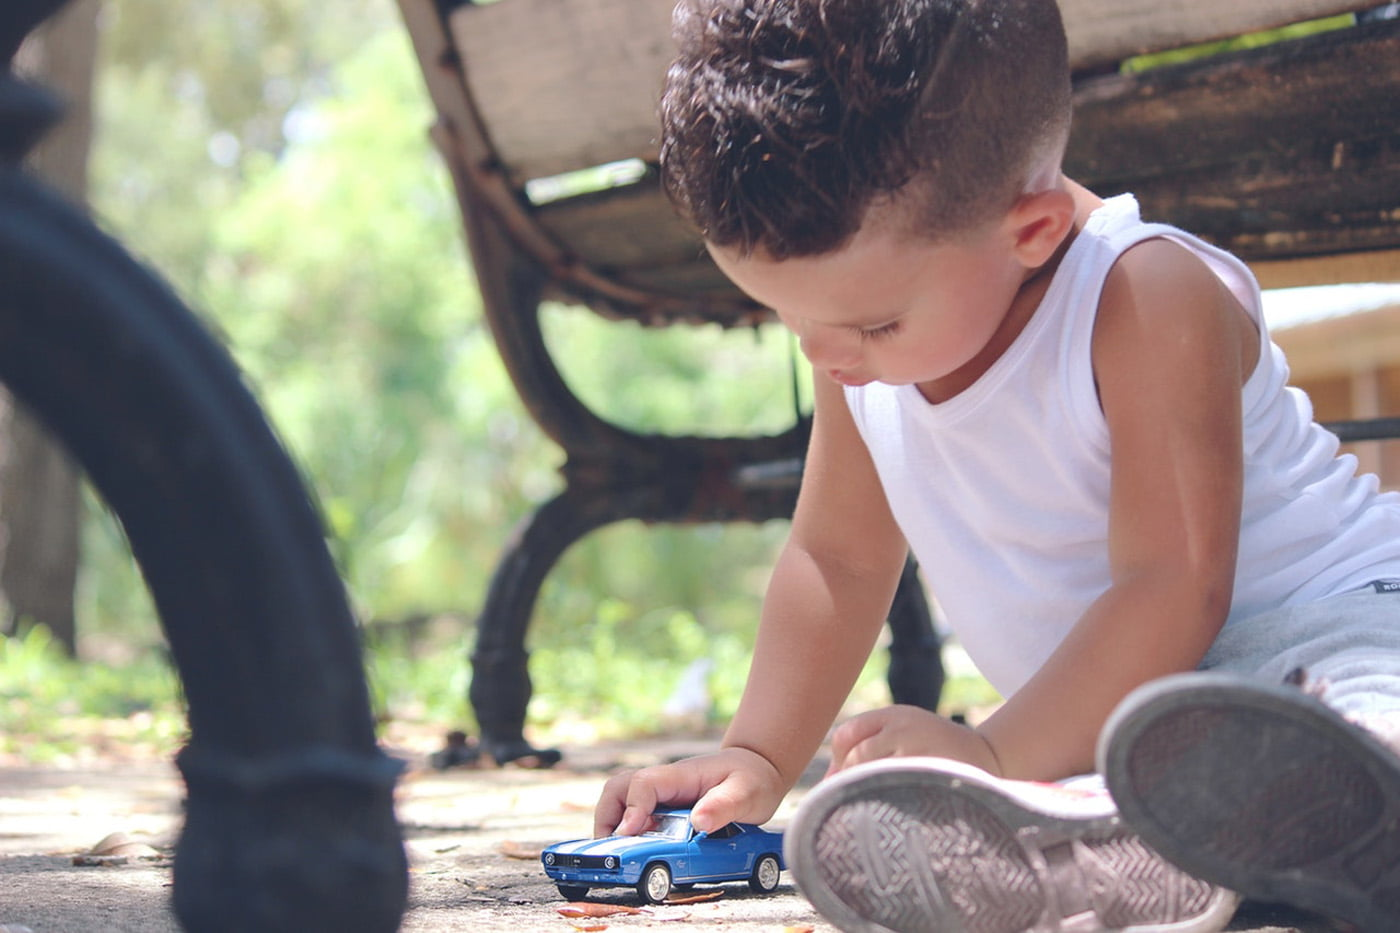 2017 Changes to the Child Booster Seat Law